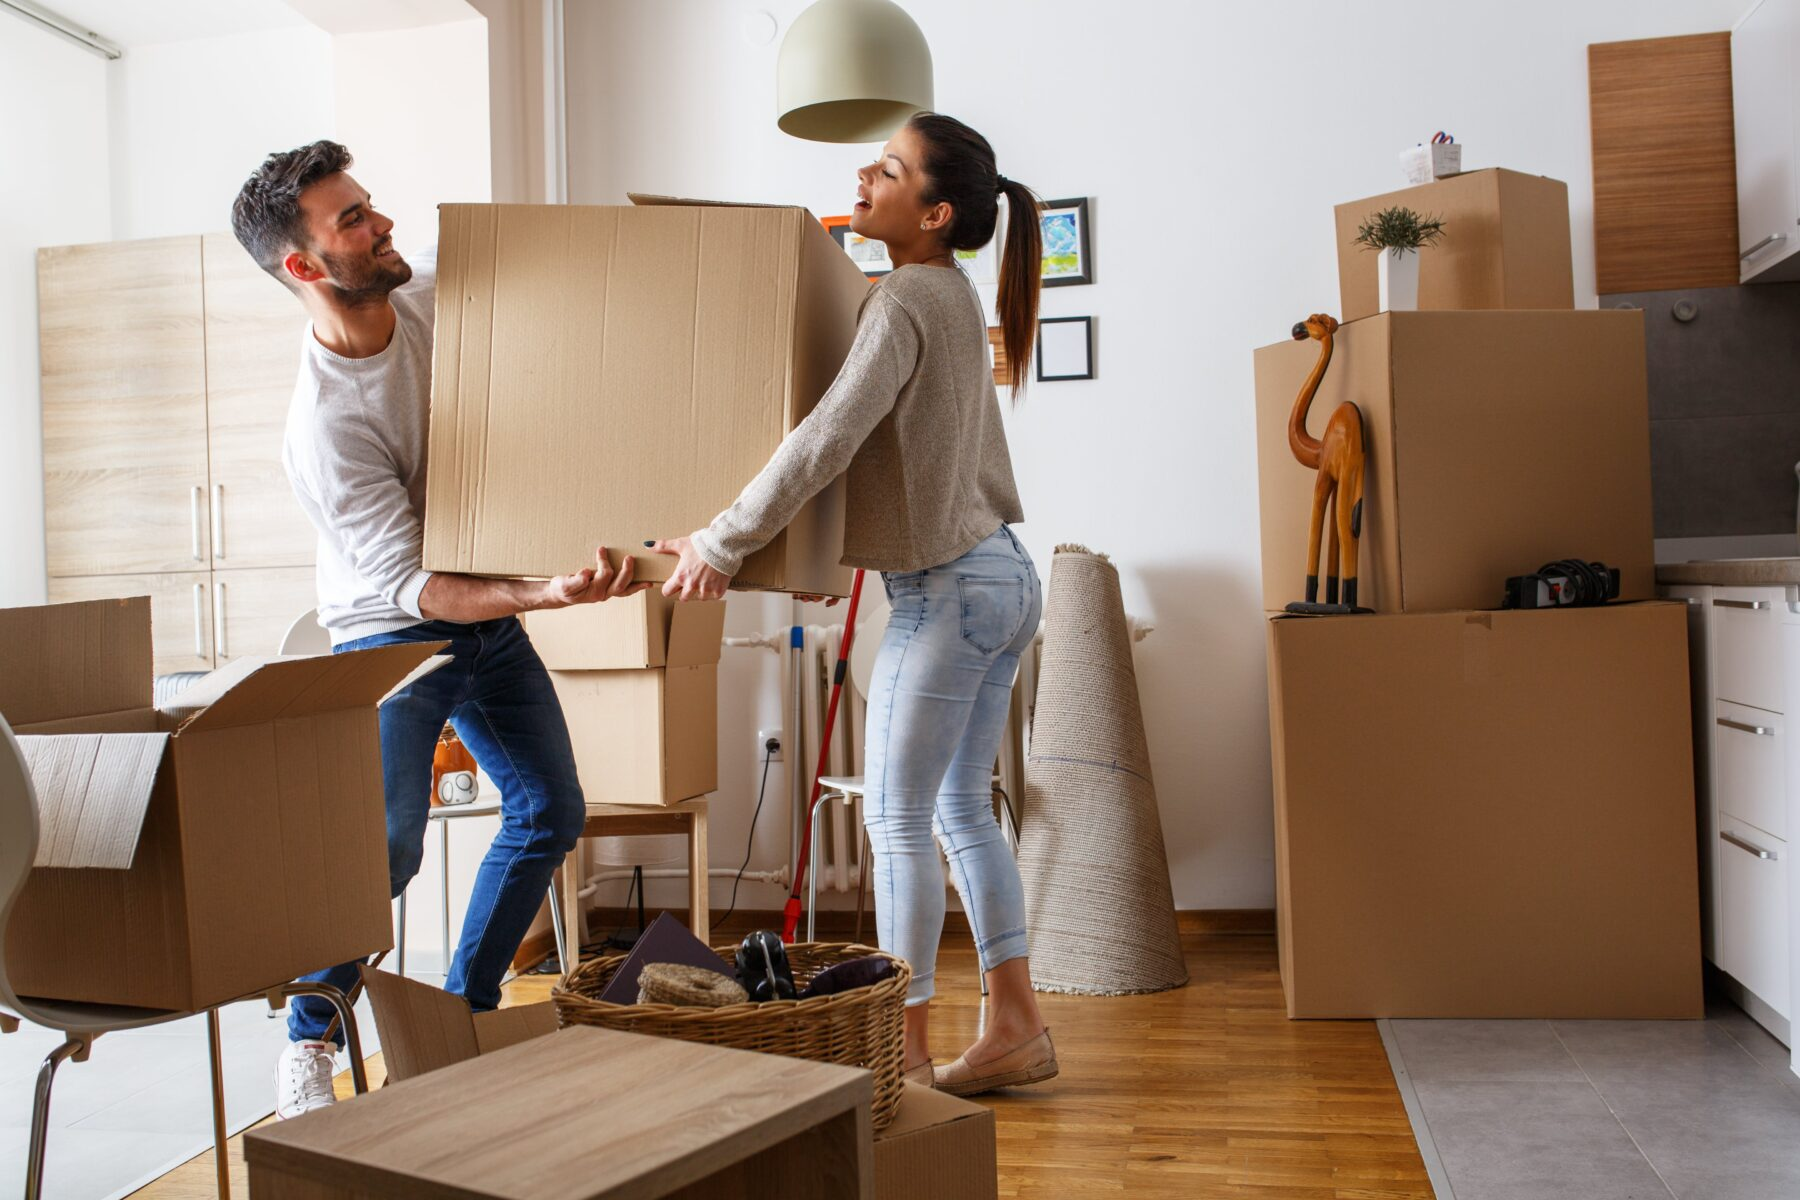 How do I find the right tenant